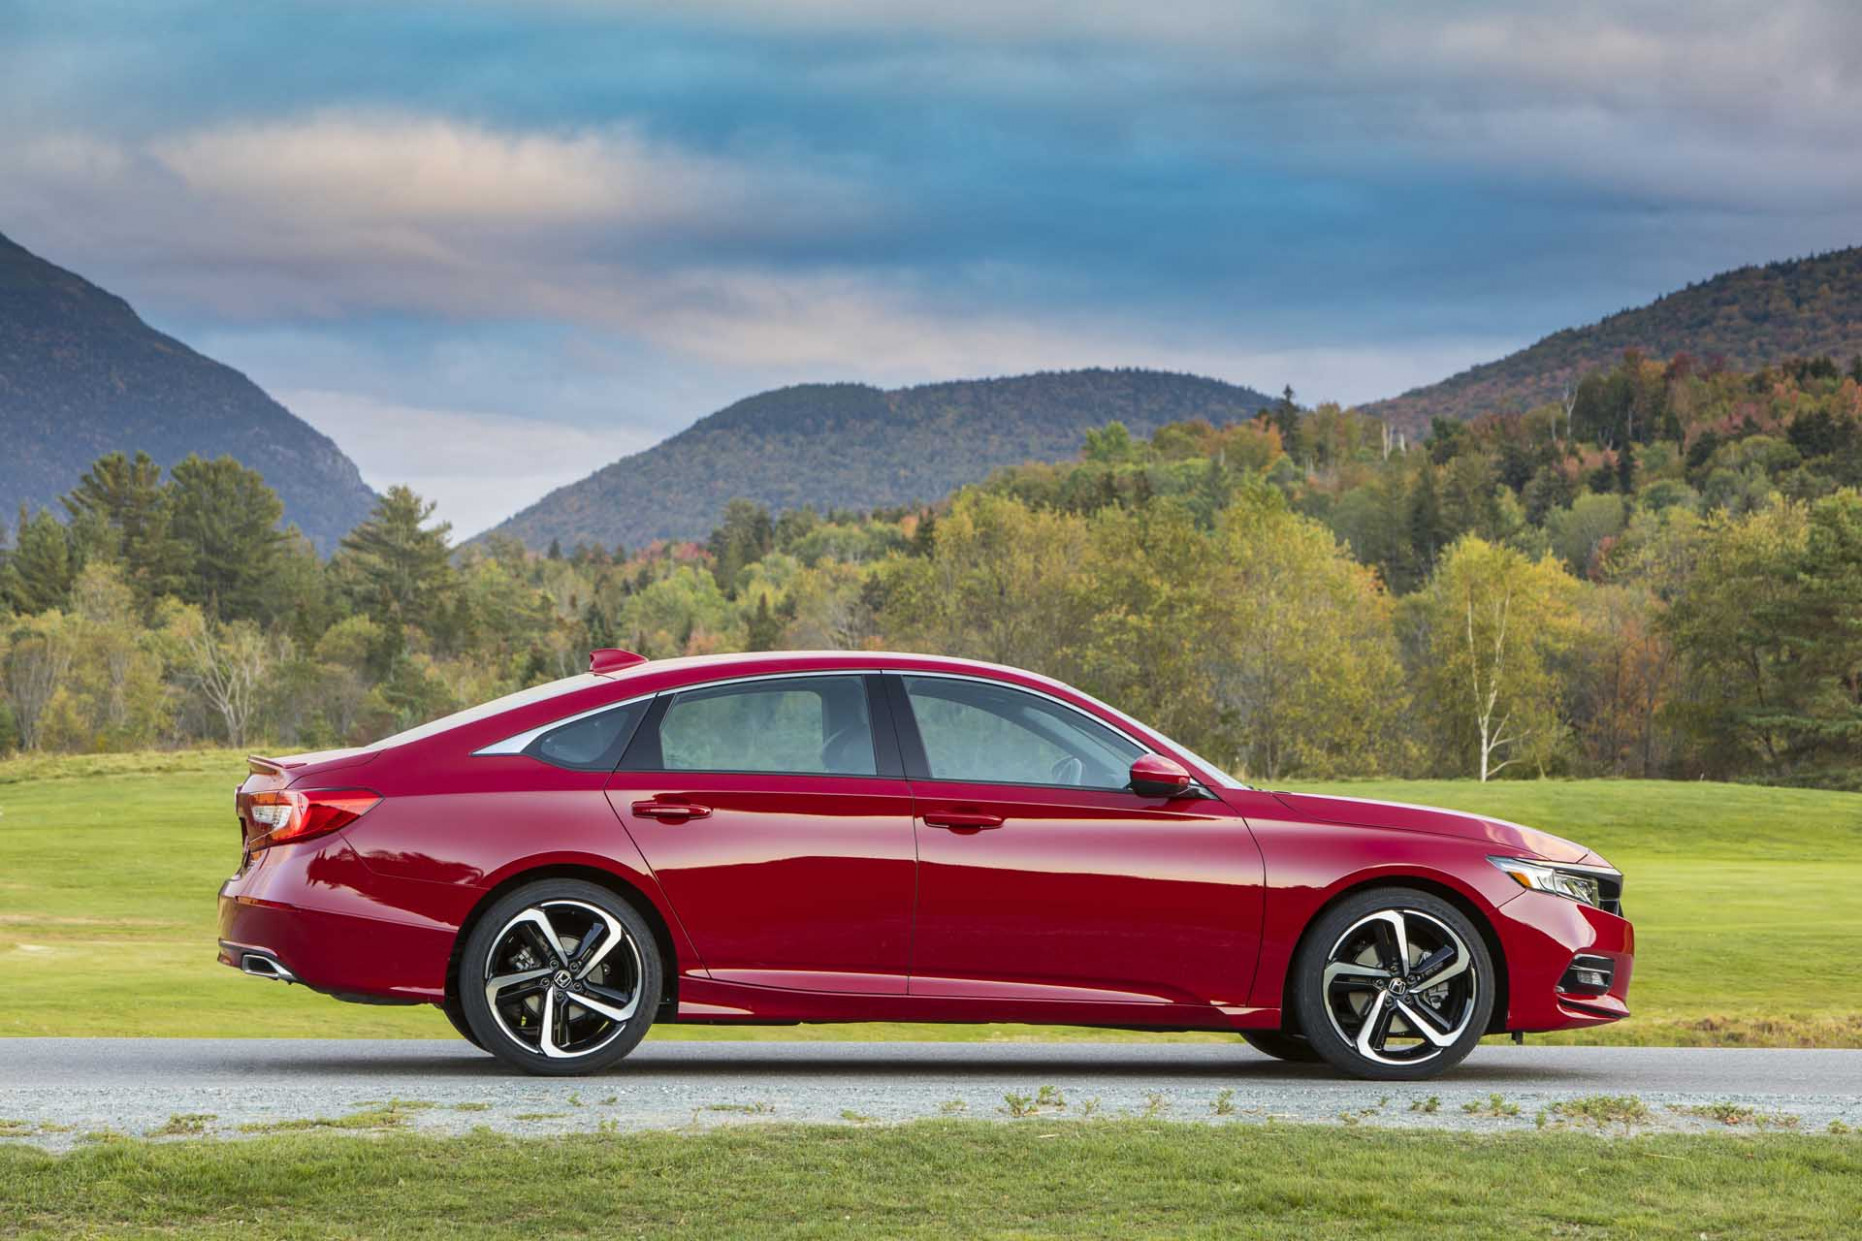 6 Honda Accord Review, Ratings, Specs, Prices, and Photos - The ..